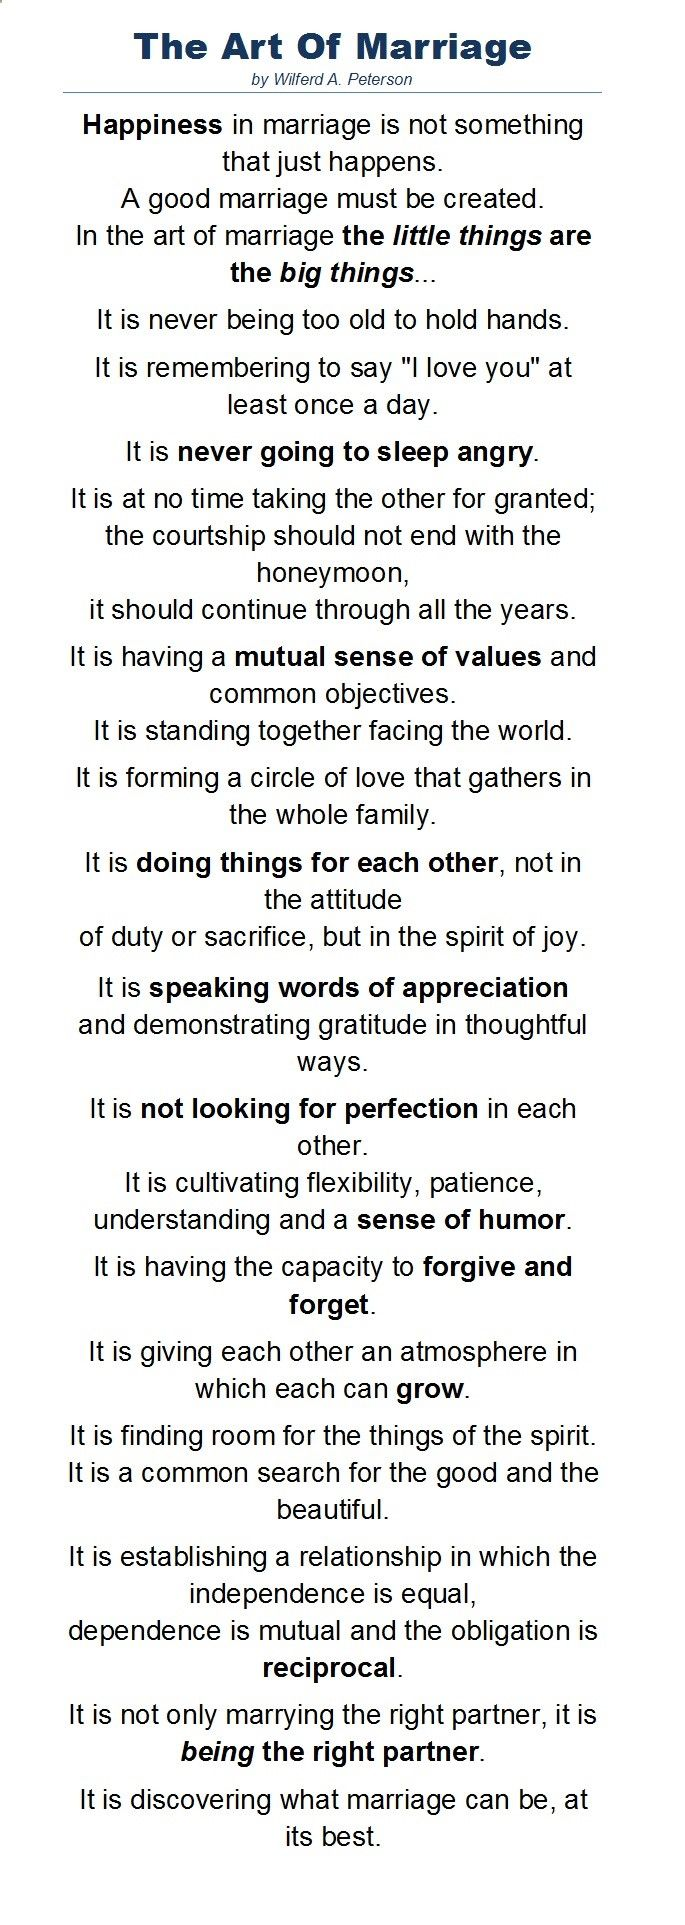 A Wonderful Poem By Wilferd Peterson About The Art Of Marriage Read At Paul Newman S Wedding To Joanne Woodward More